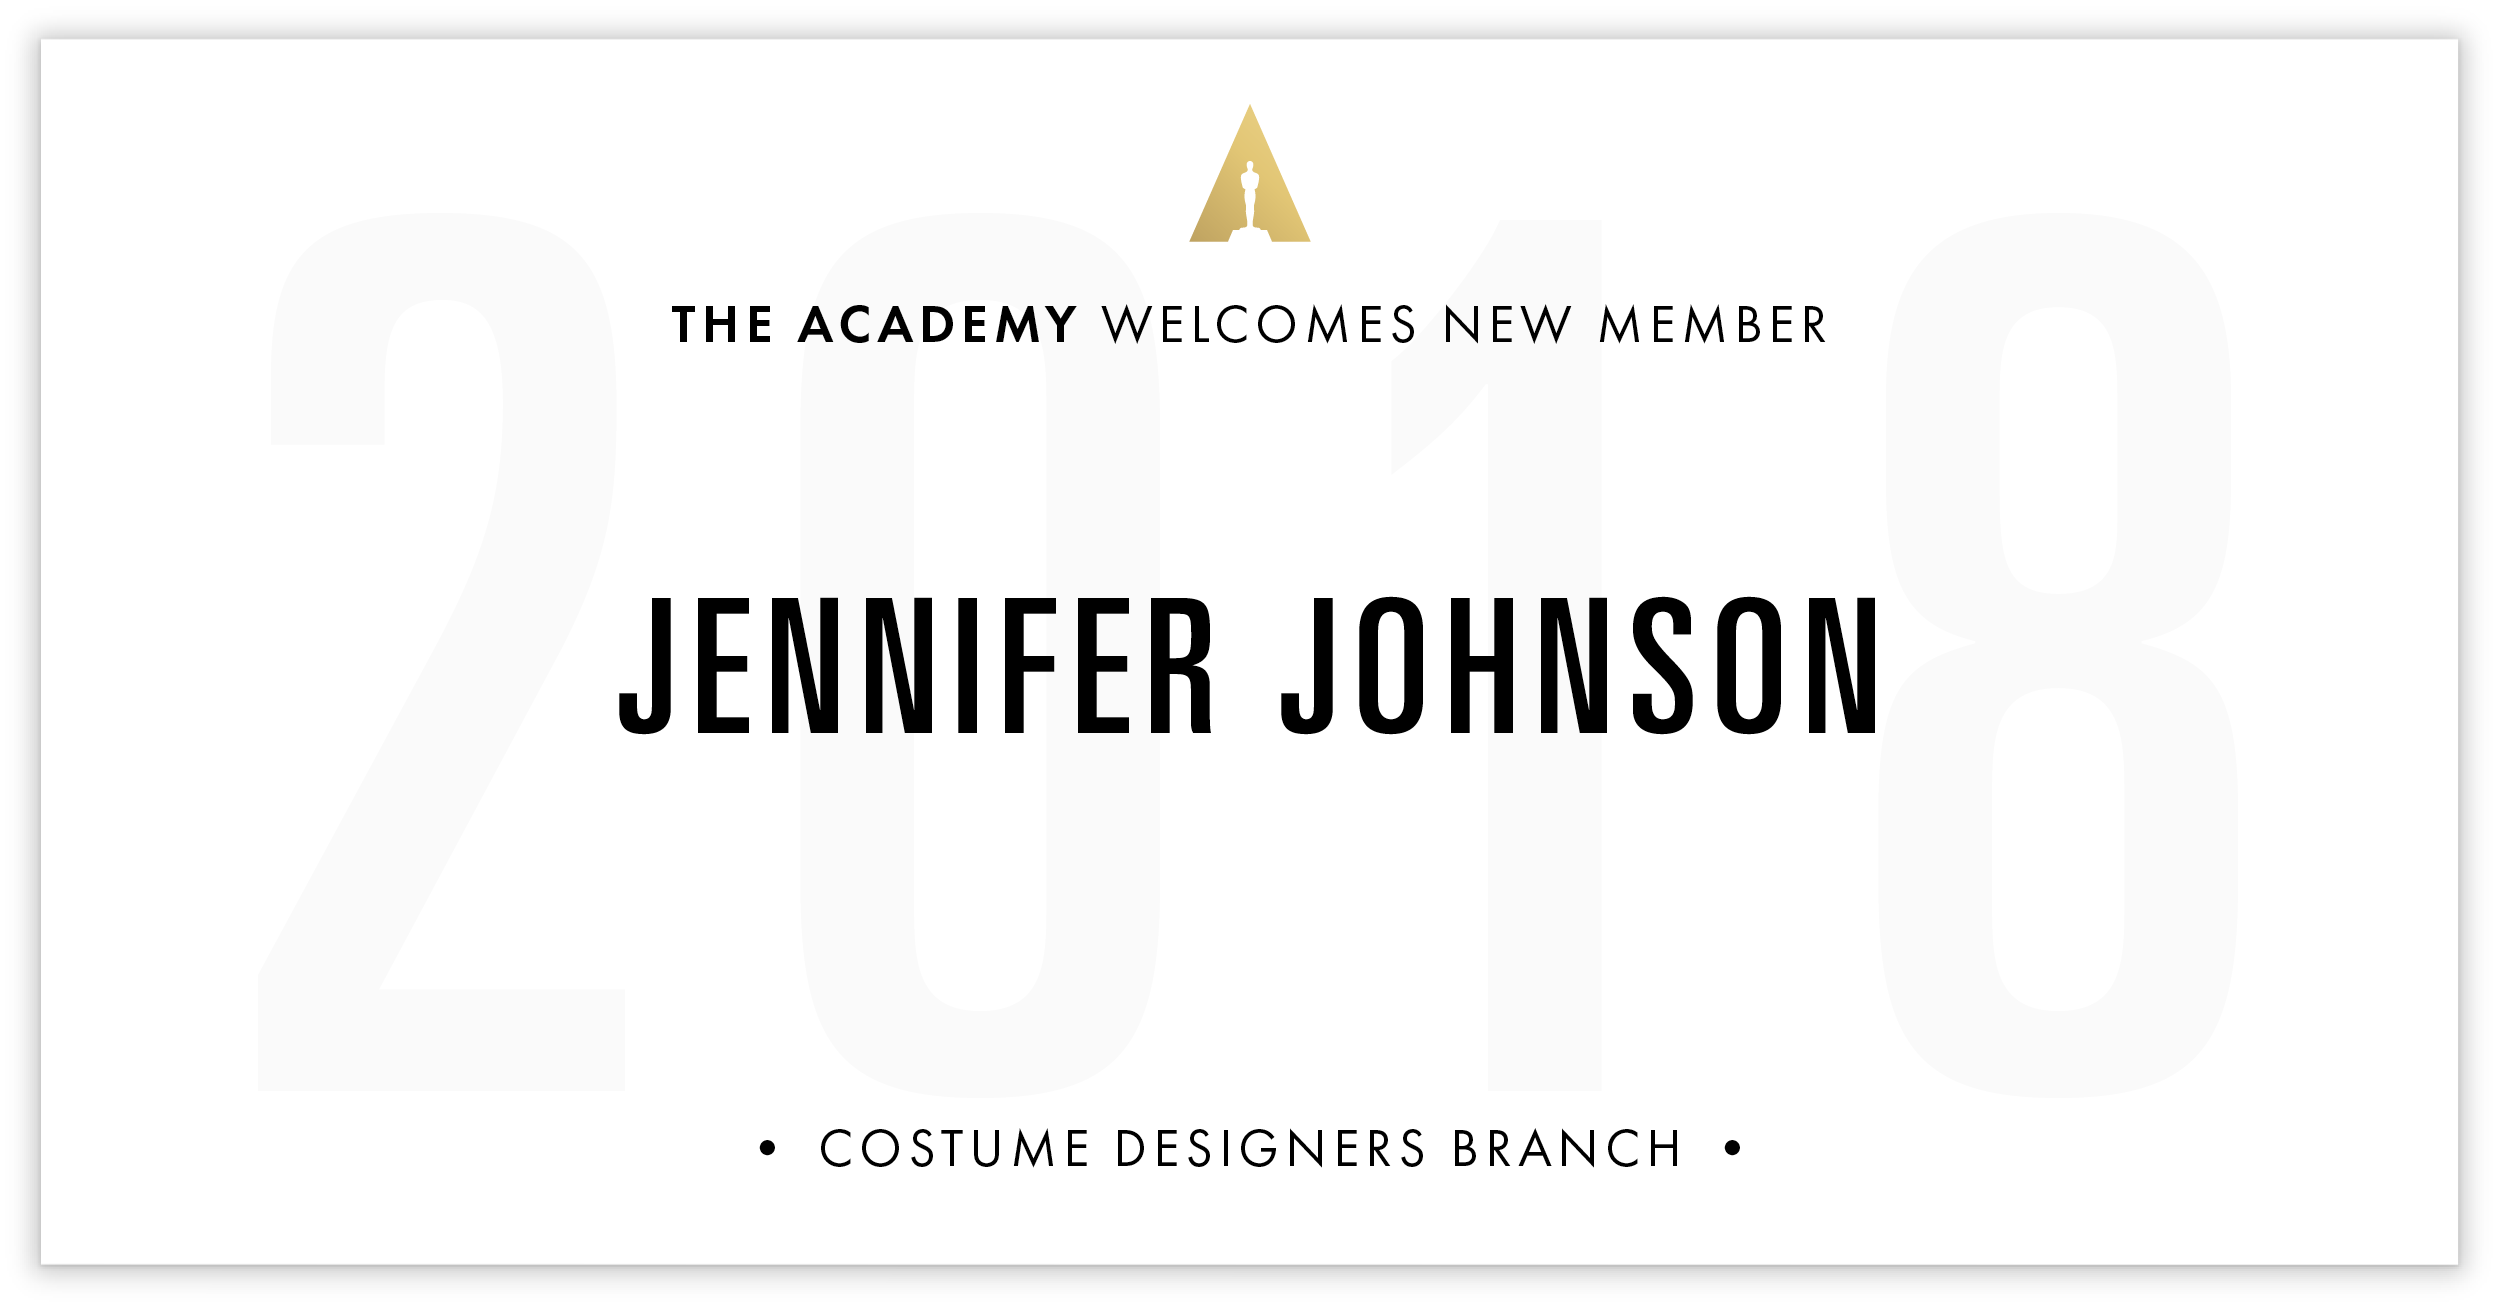 Jennifer Johnson is invited!